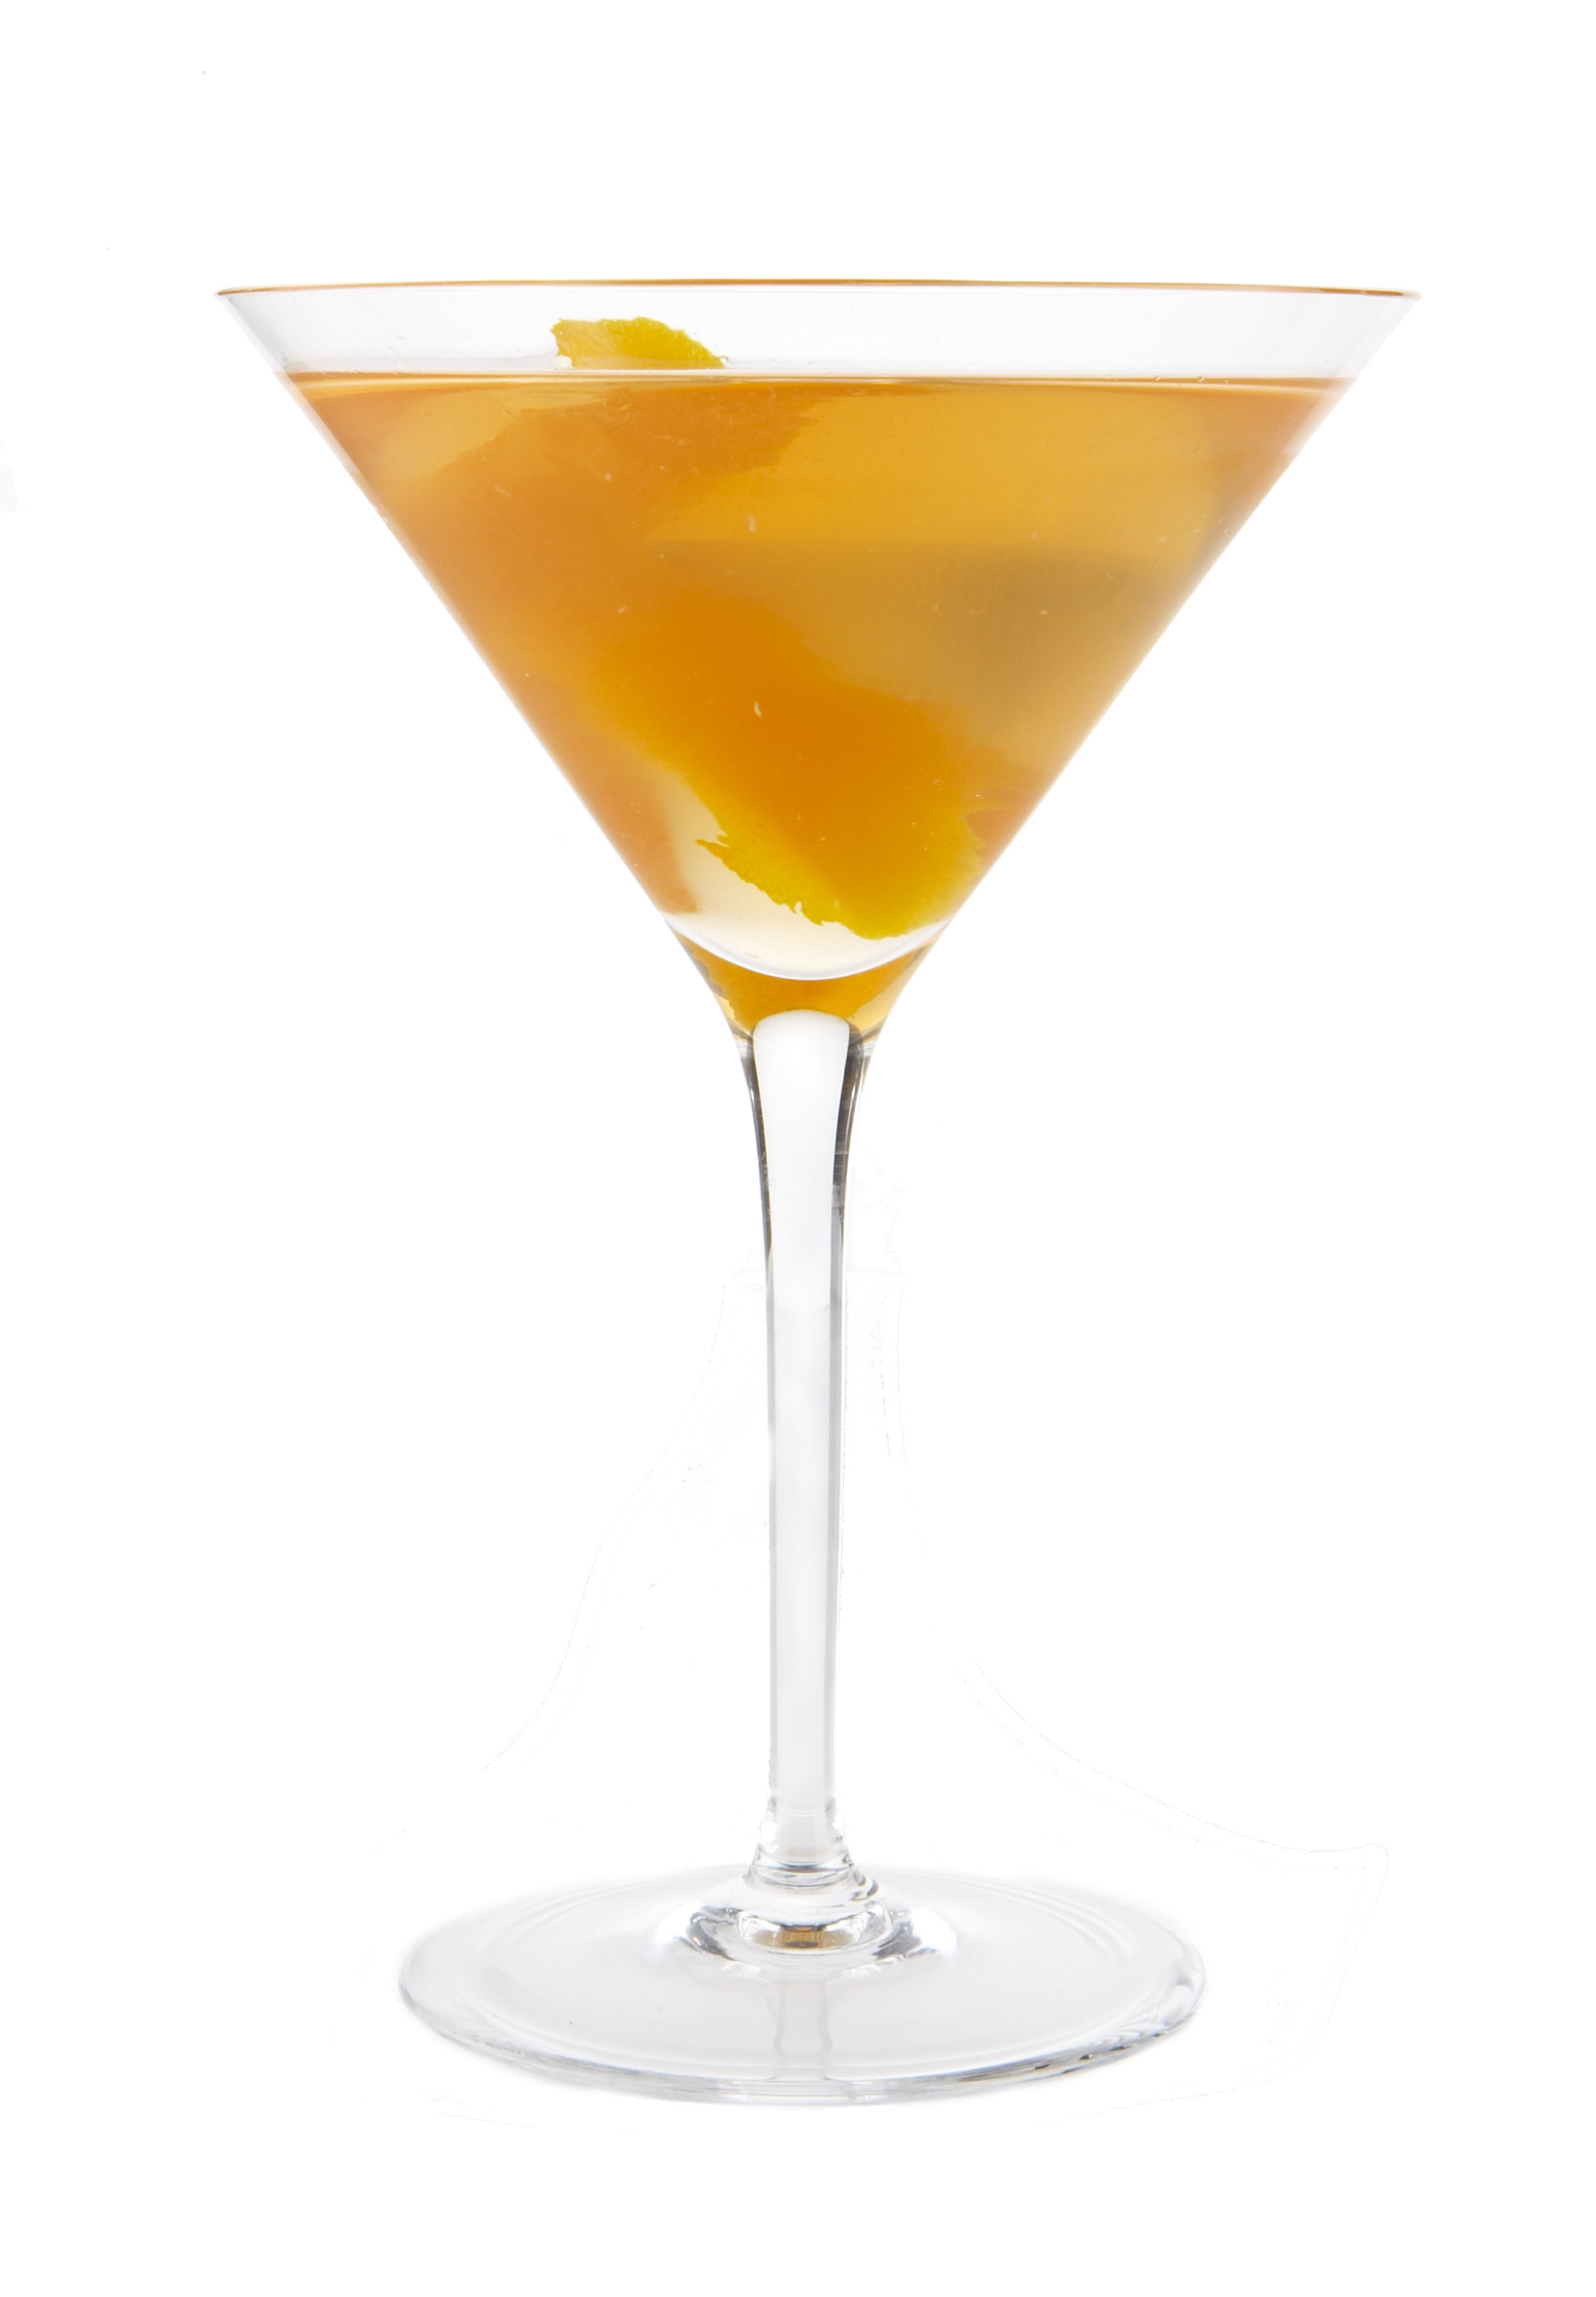 El Presidente - Drink Recipe – How to Make the Perfect El Presidente